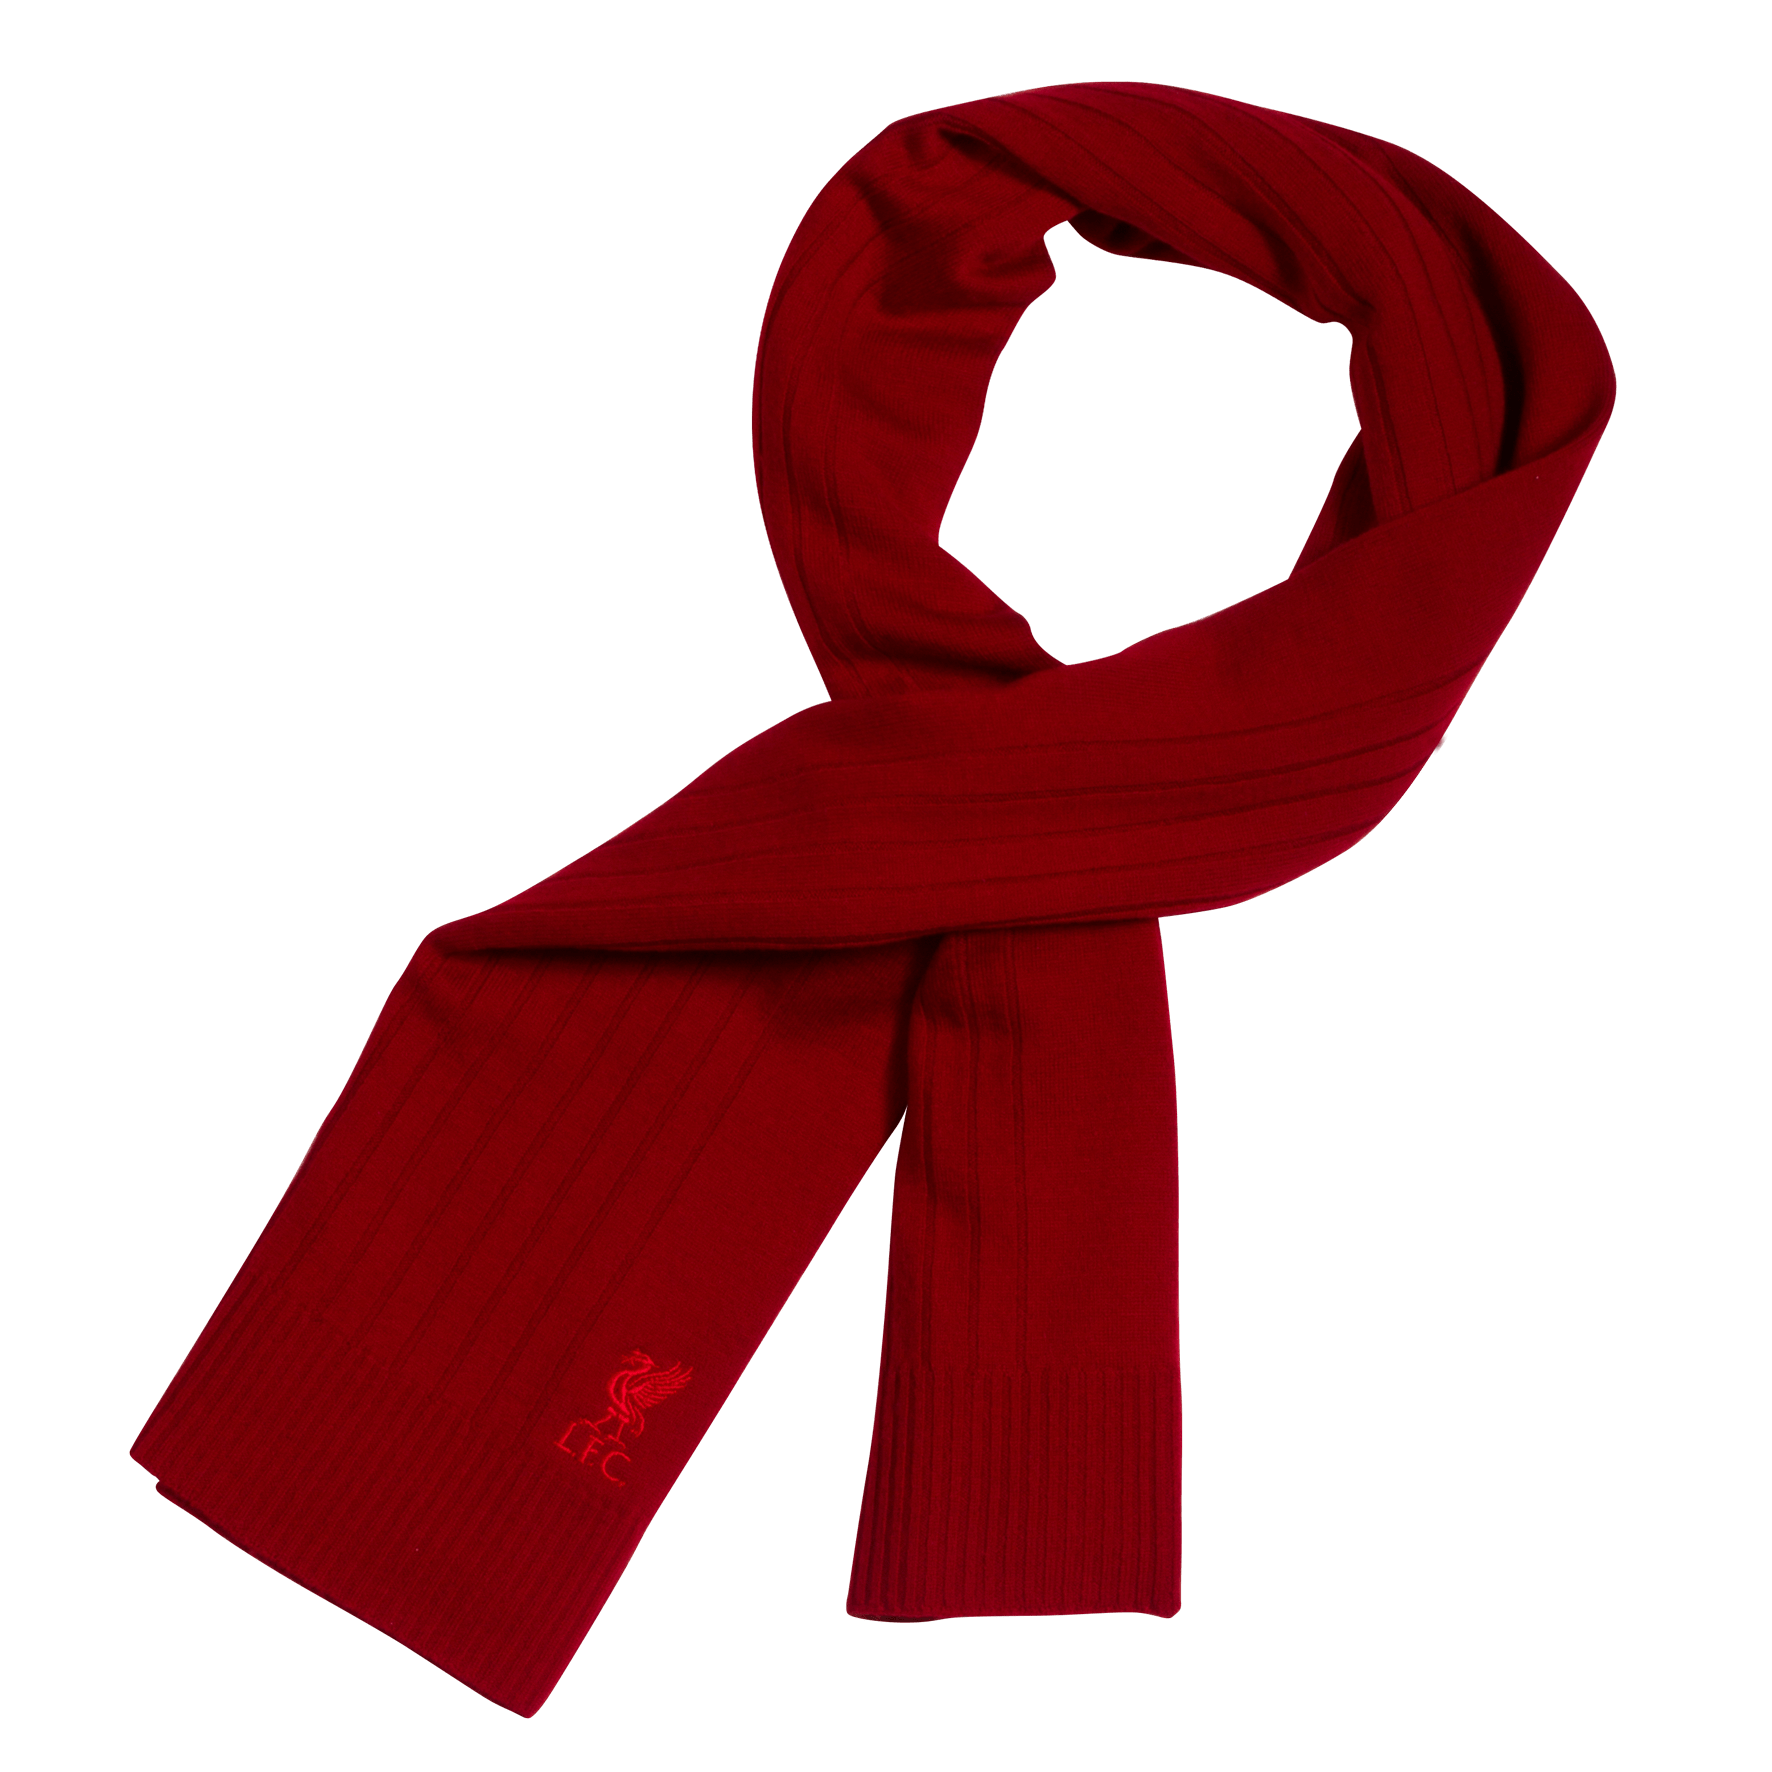 Red Scarf Png Image Red Scarves Scarf Cool Outfits